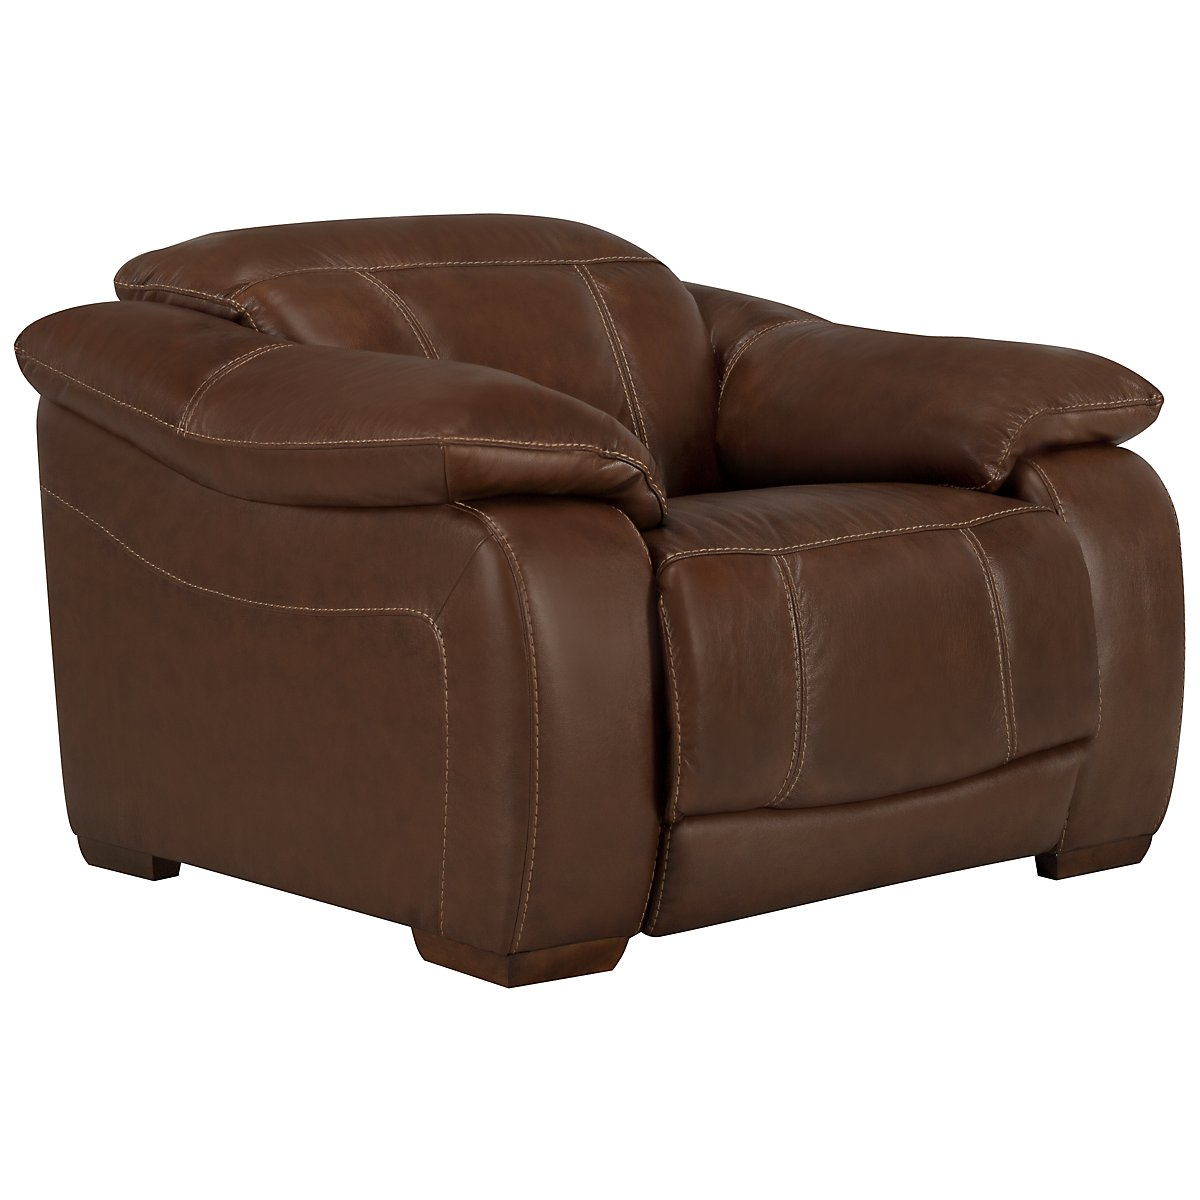 Orion Md Brown Leather & Bonded Leather Recliner